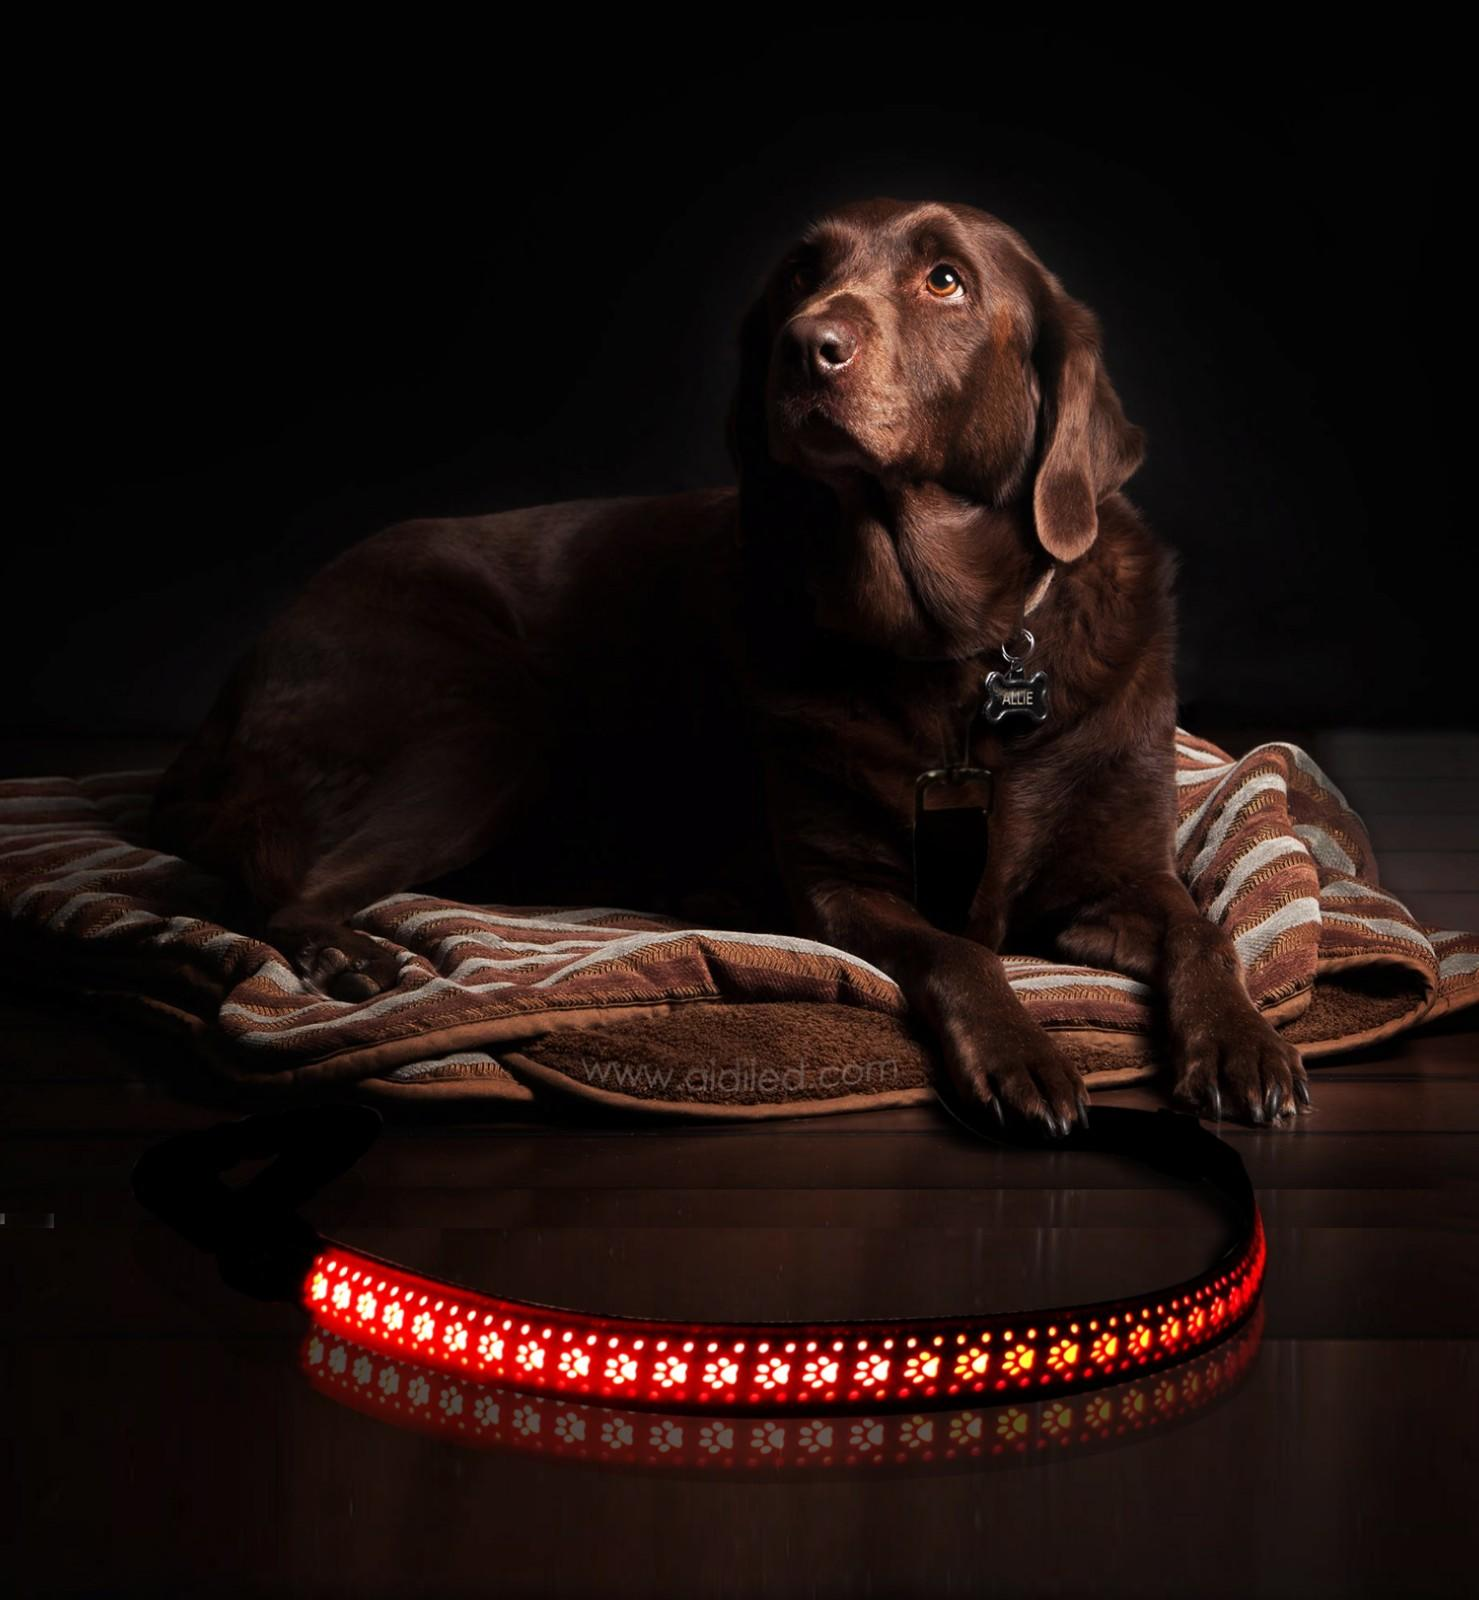 leather lighted dog leash design for outdoors